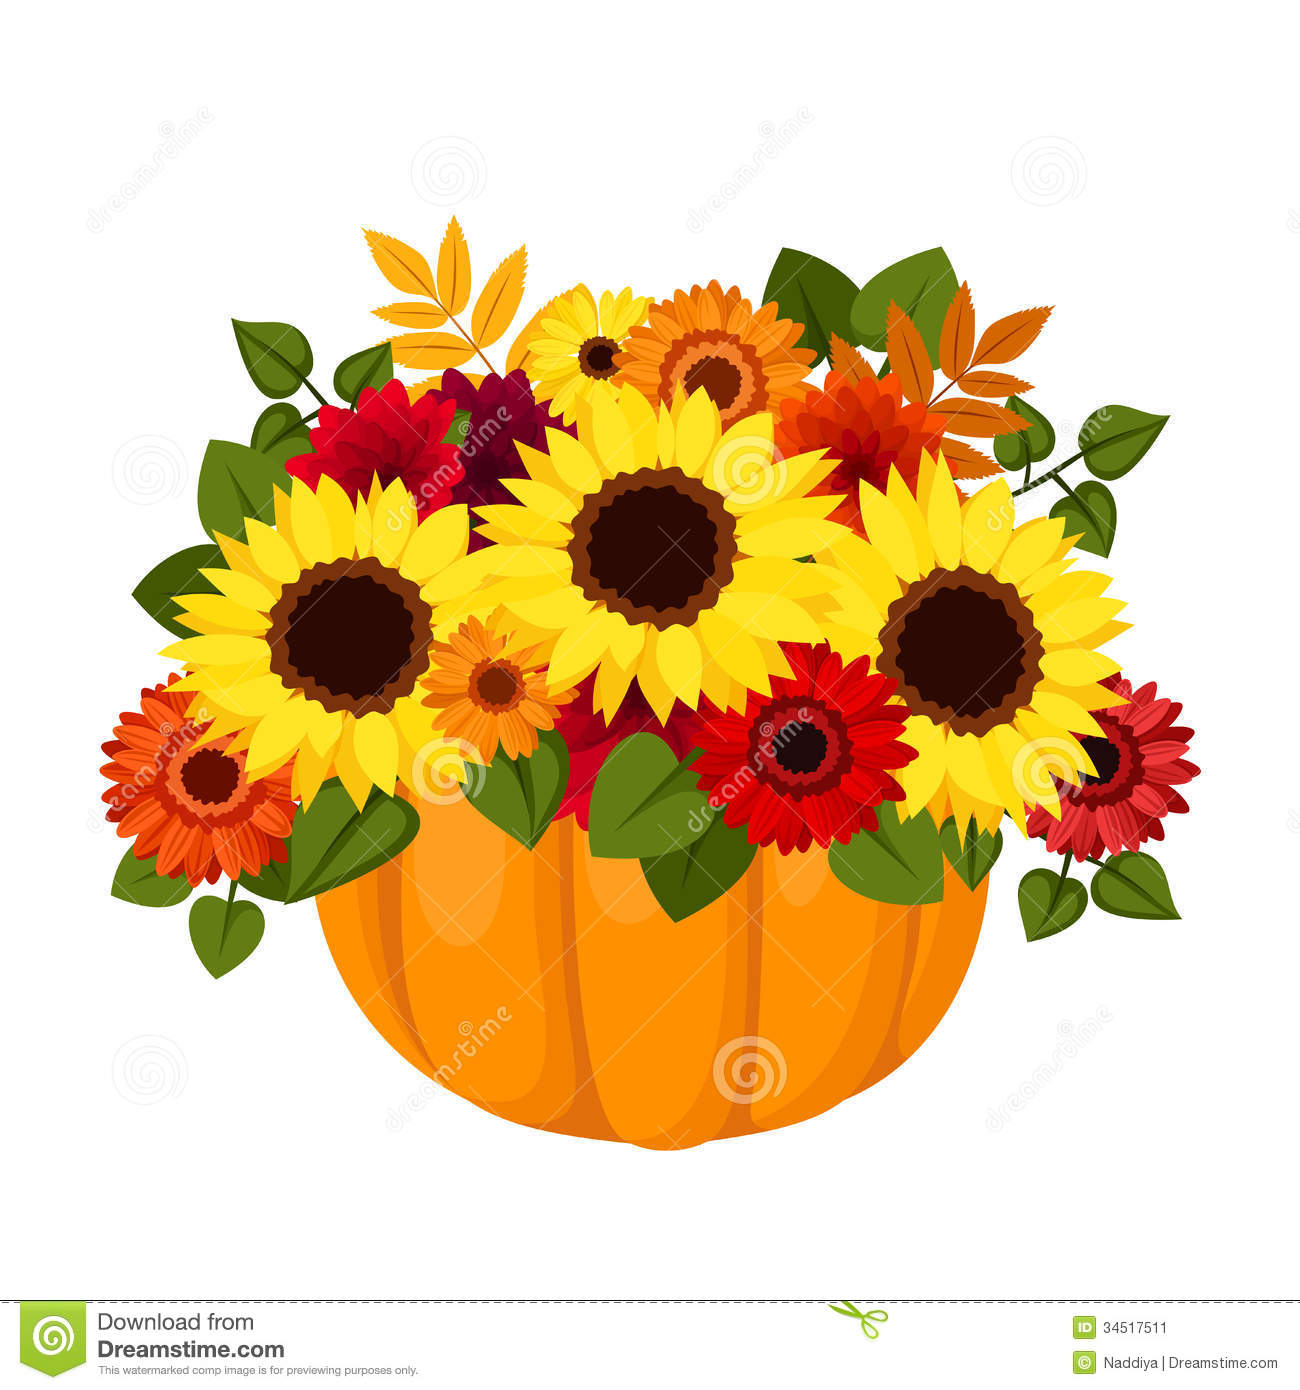 Autumn Colorful Flowers In Pumpkin. Stock Image - Image ...